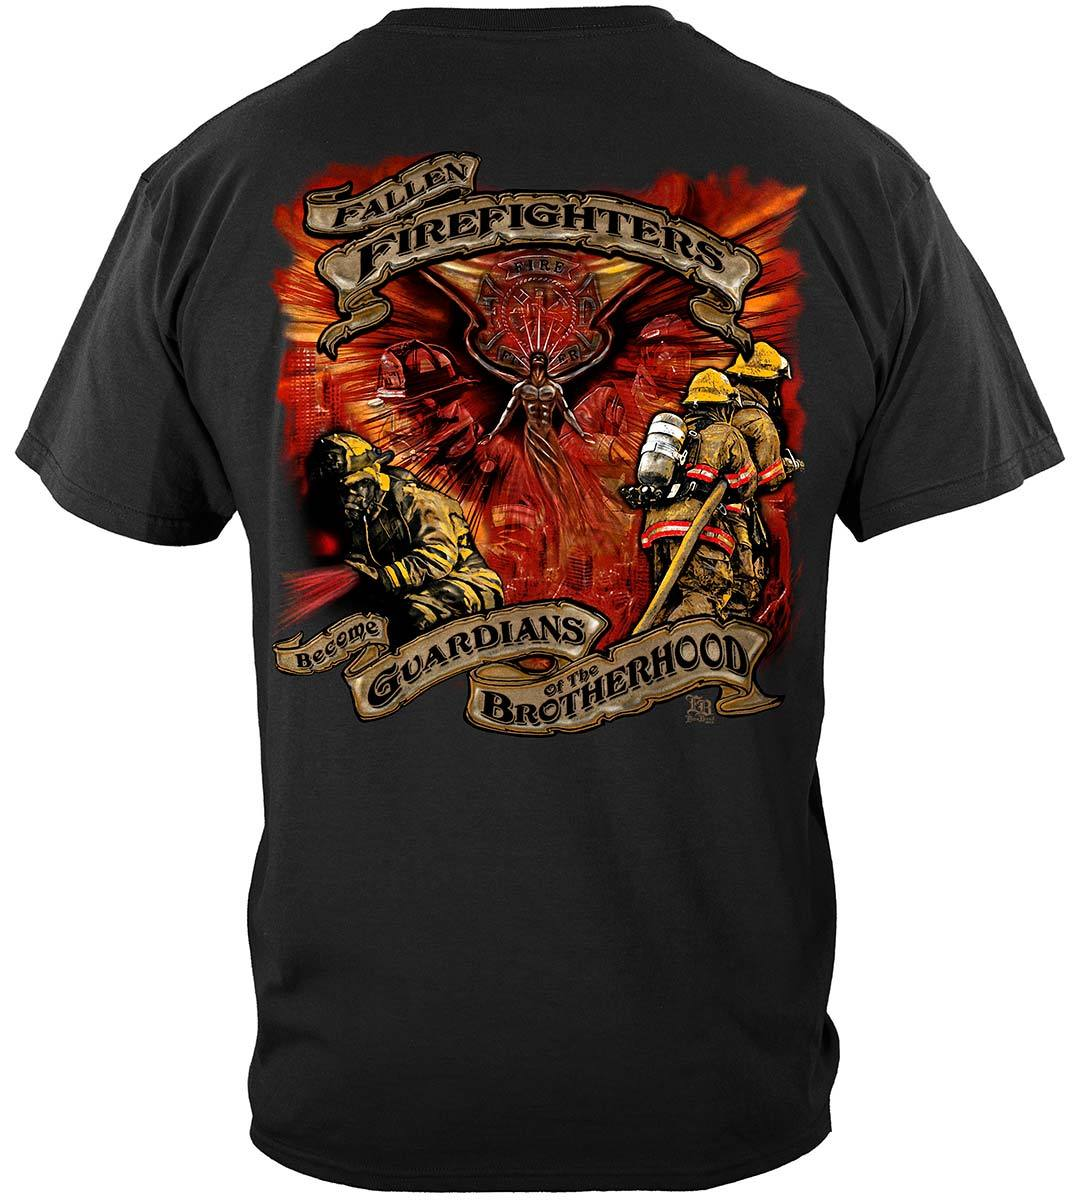 Fallen Firefighters Guardians T-Shirt Premium Long Sleeves